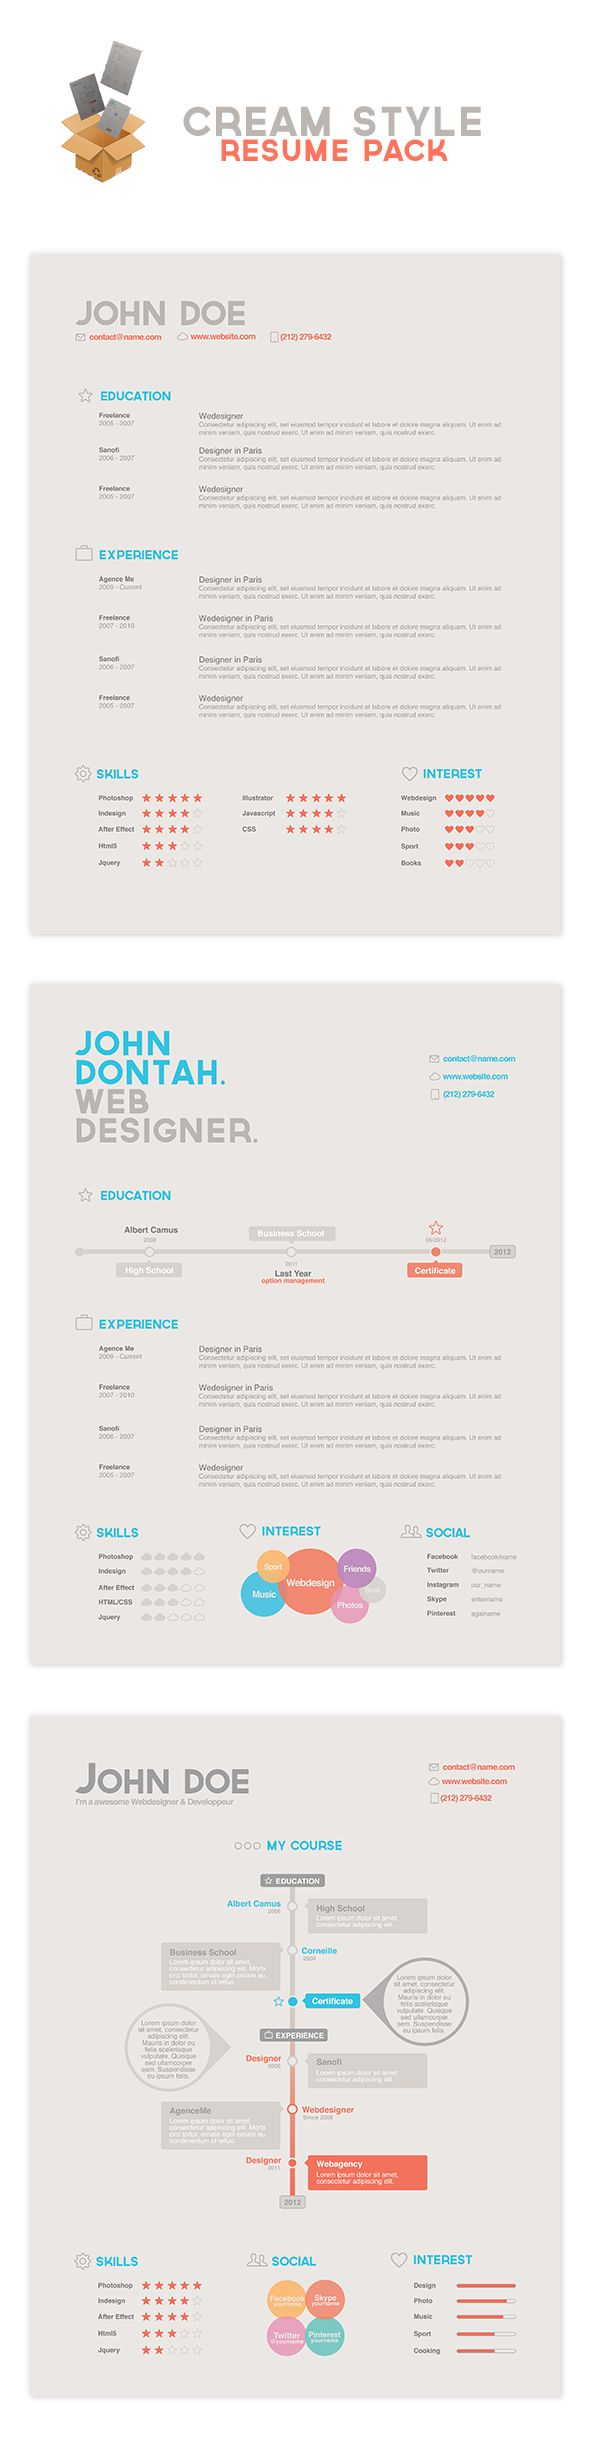 Resume Headers 103 Best Resume Design Images On Pinterest  Resume Design Resume .